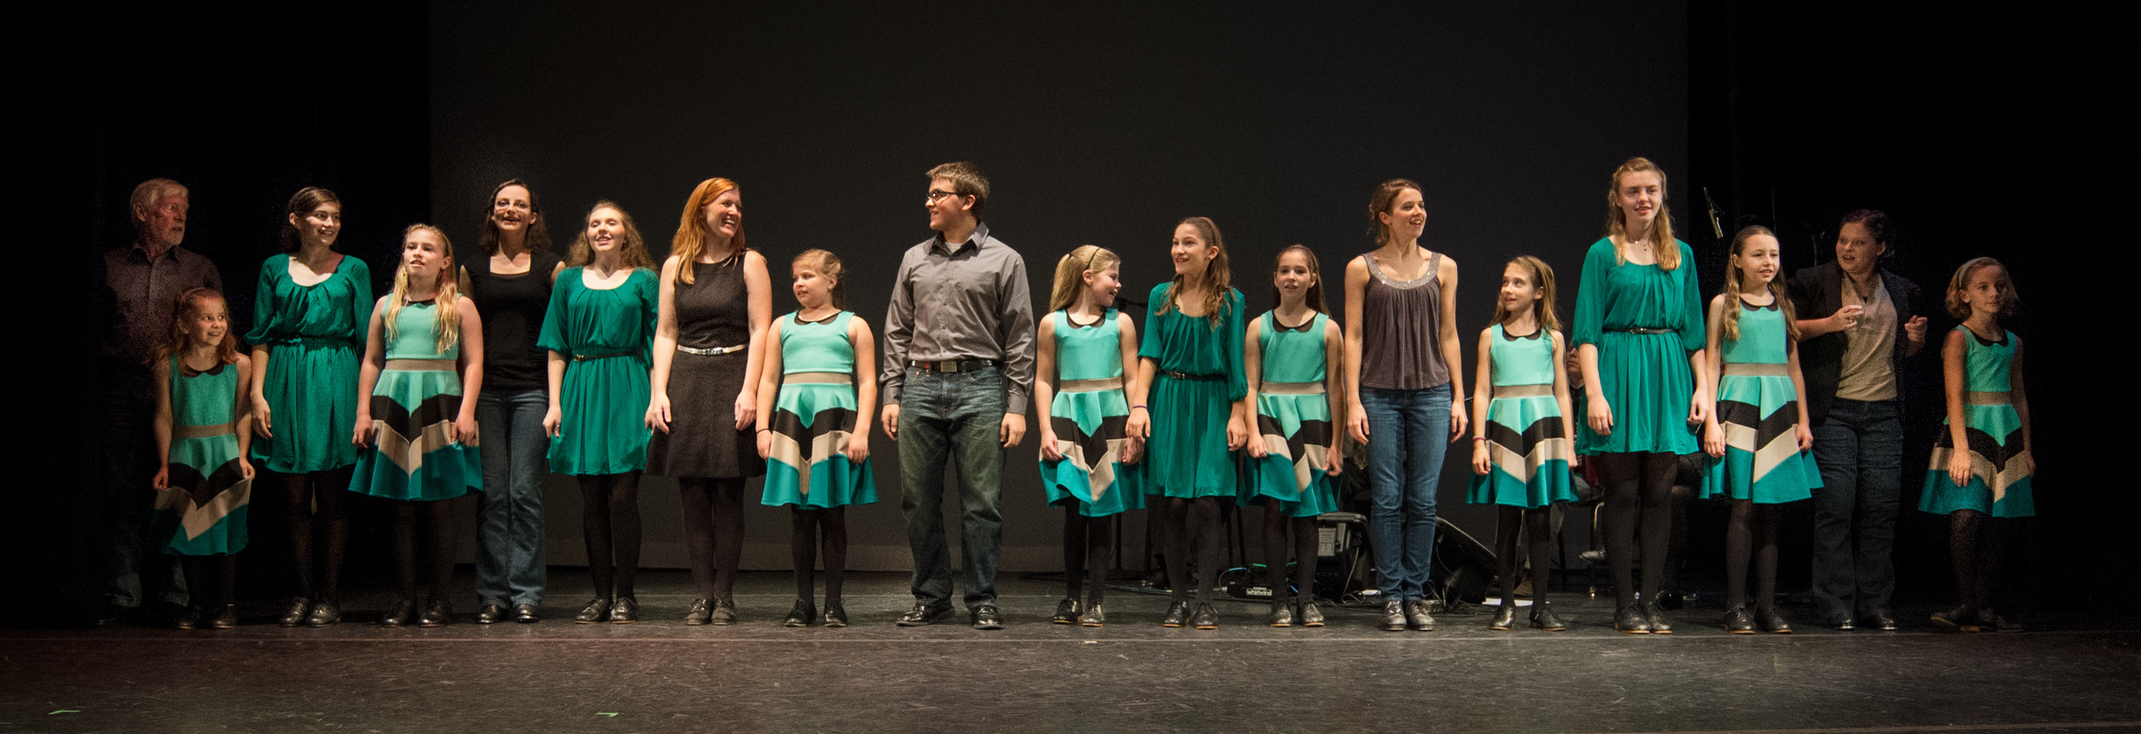 Shannon Dunne Dance Company, Kennedy Center Millennium Stage 2014